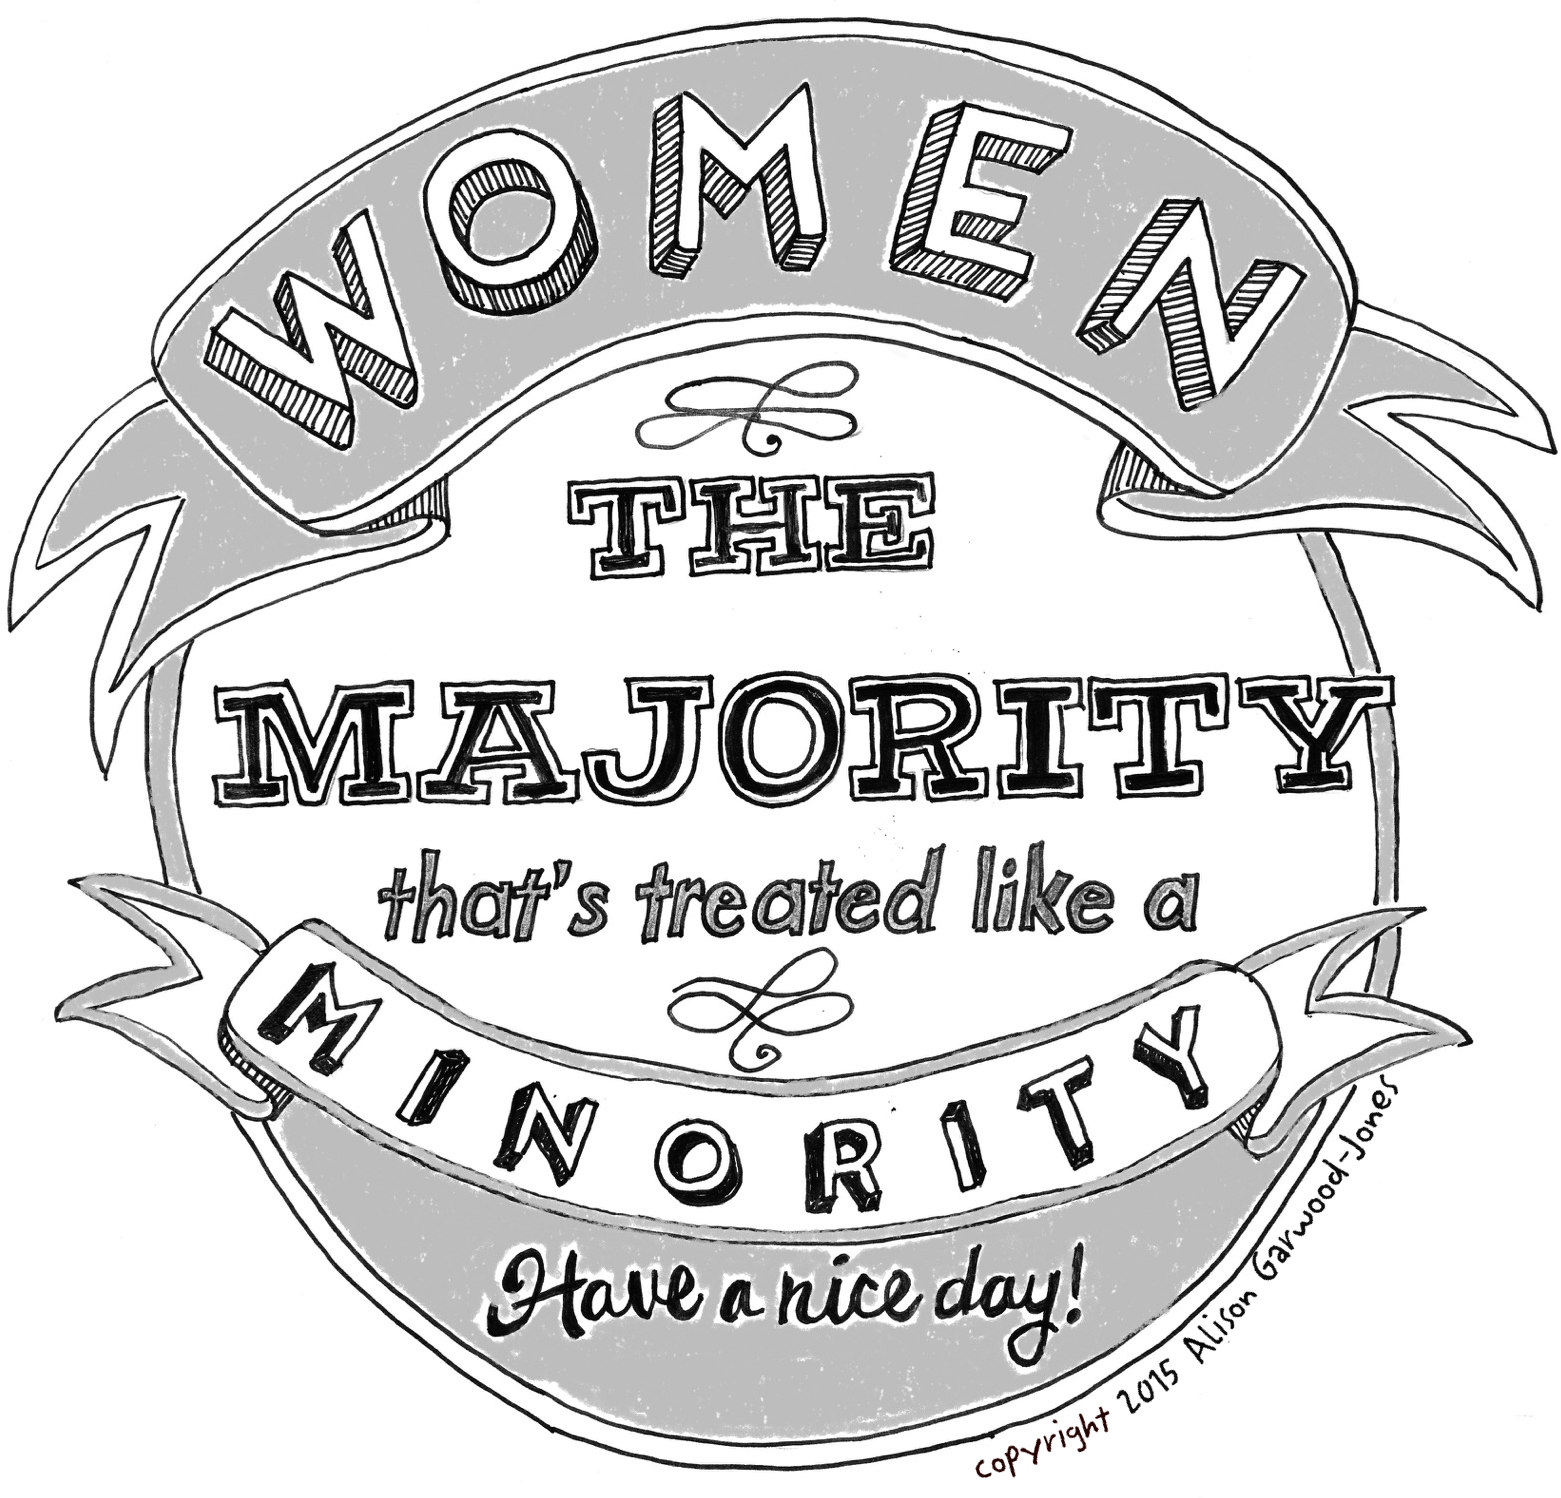 Homemade Crest - Women: The Majority that's treated like a Minority